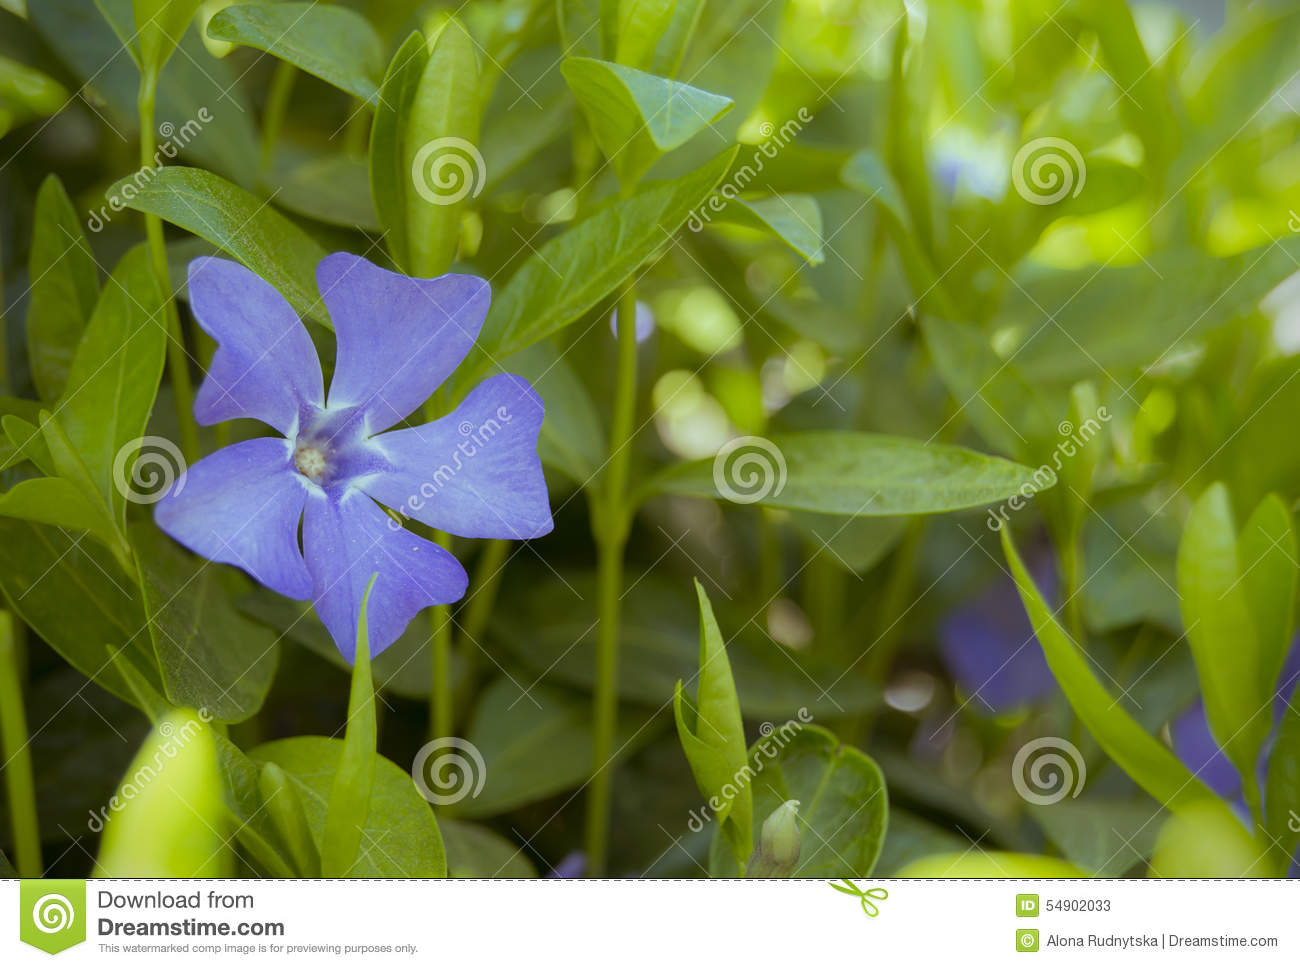 Blue periwinkle flower on a bush stock image image of grass download blue periwinkle flower on a bush stock image image of grass flower izmirmasajfo